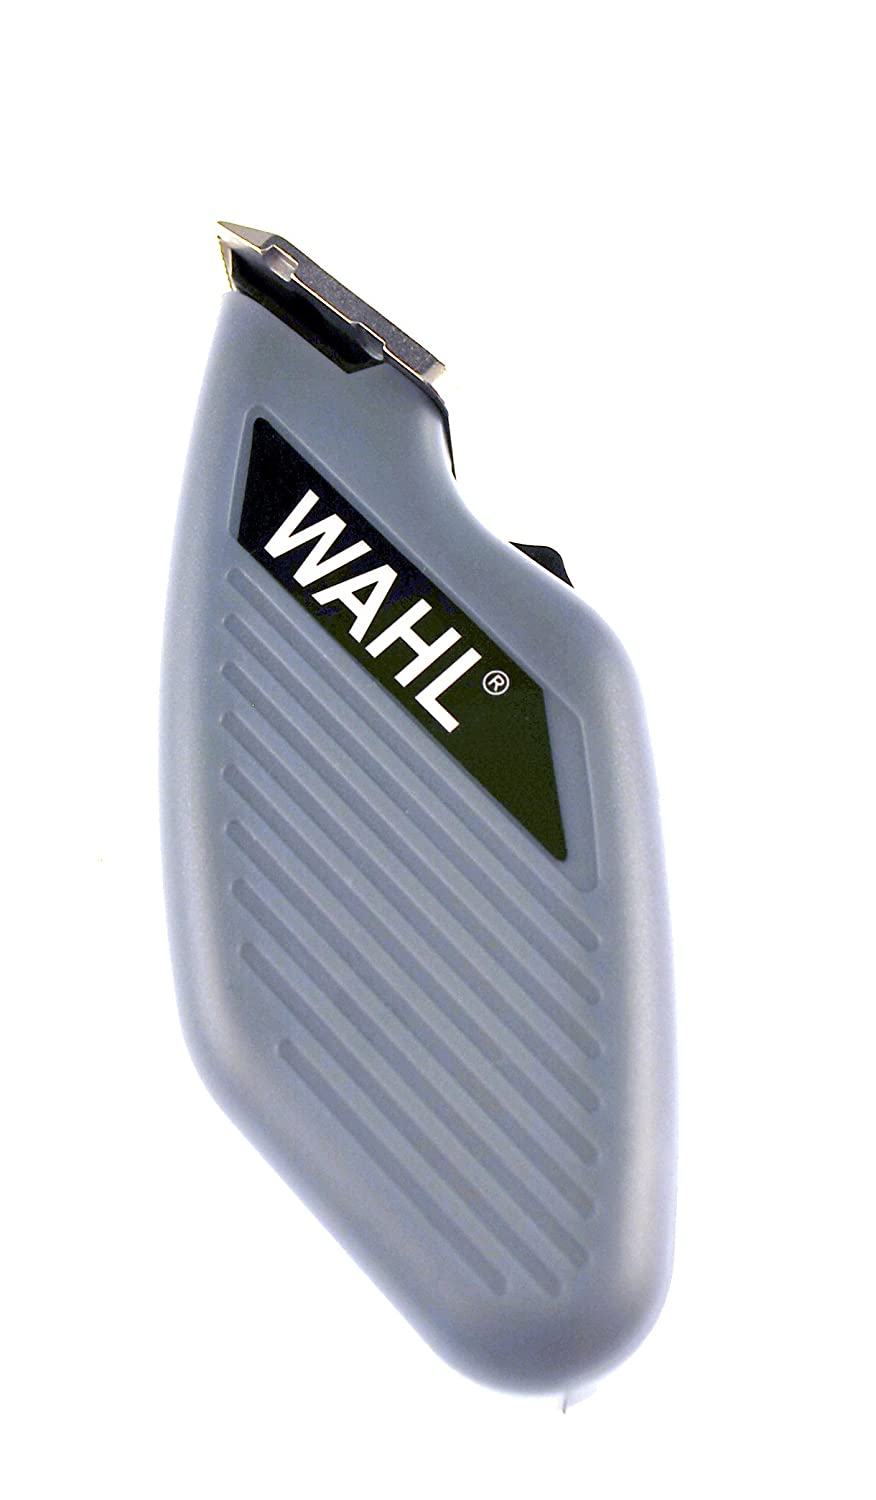 Wahl Pocket Pro Trimmer #9961-900 Wahl Clipper Corp.